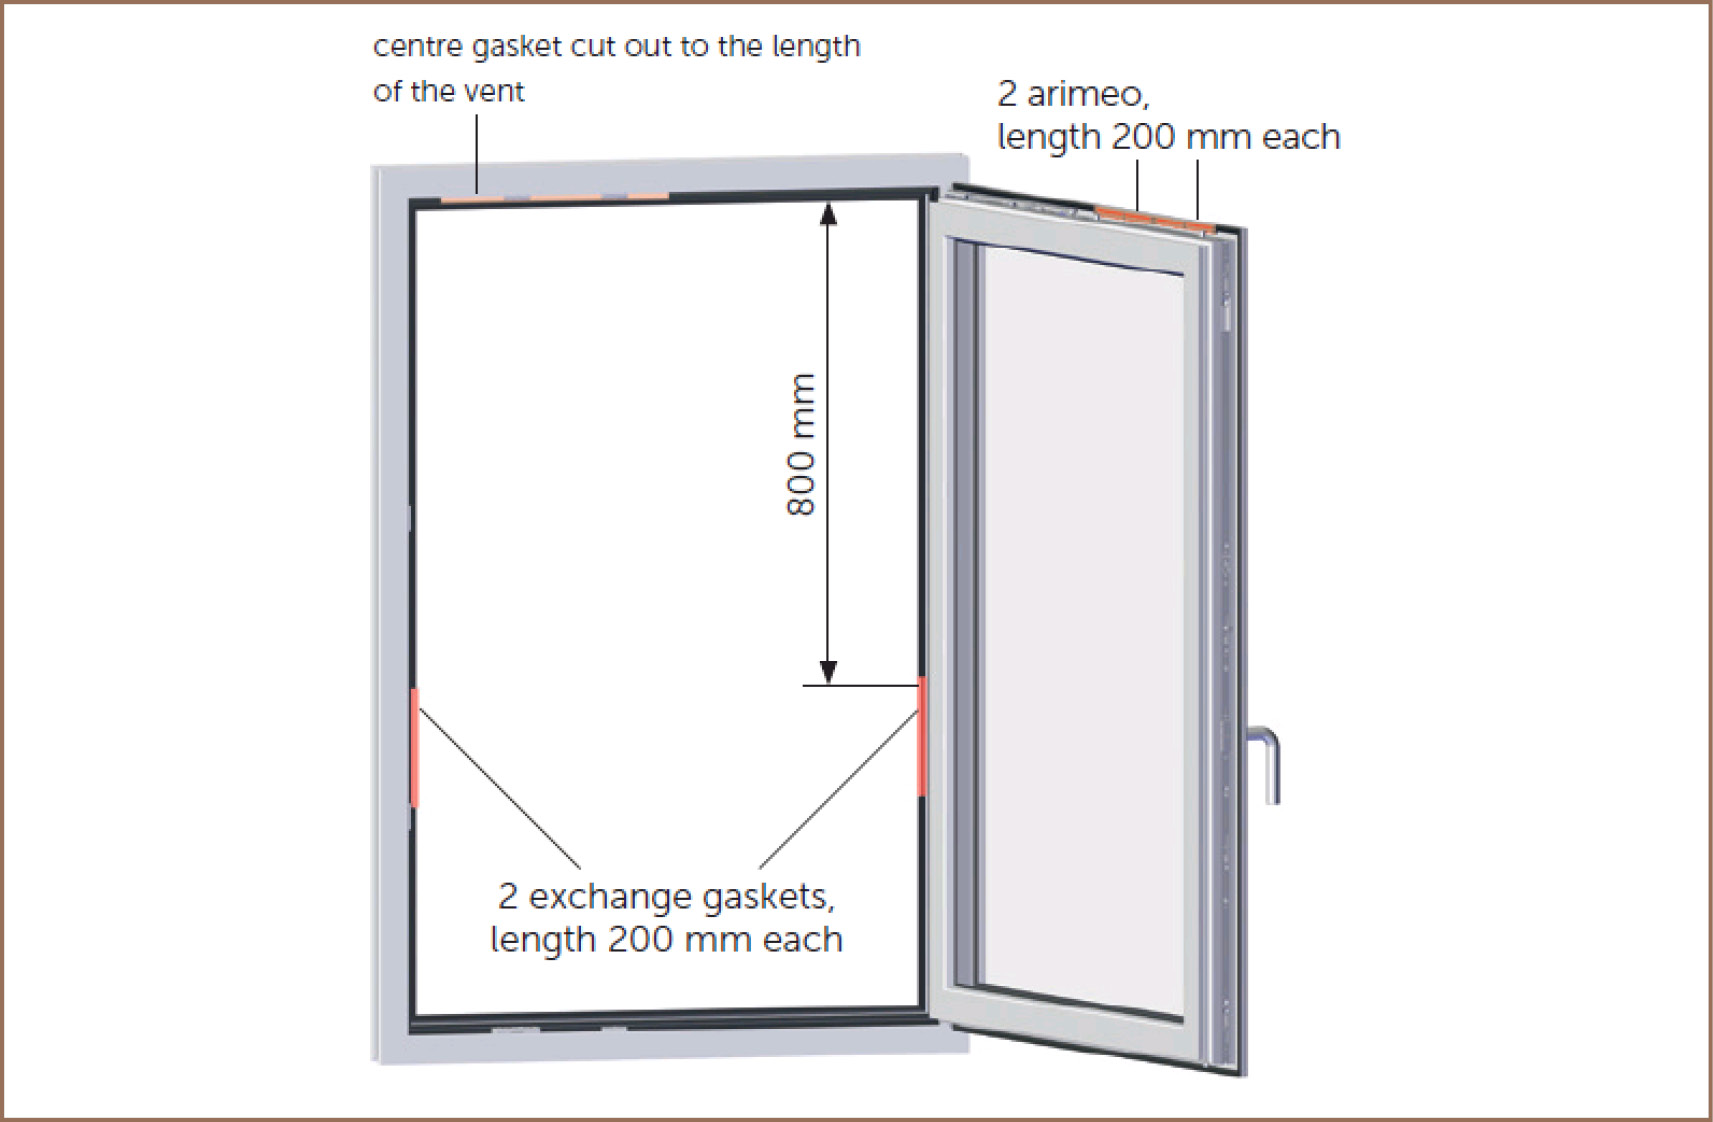 arimeo classic S installation variant double acoustic centre gasket system